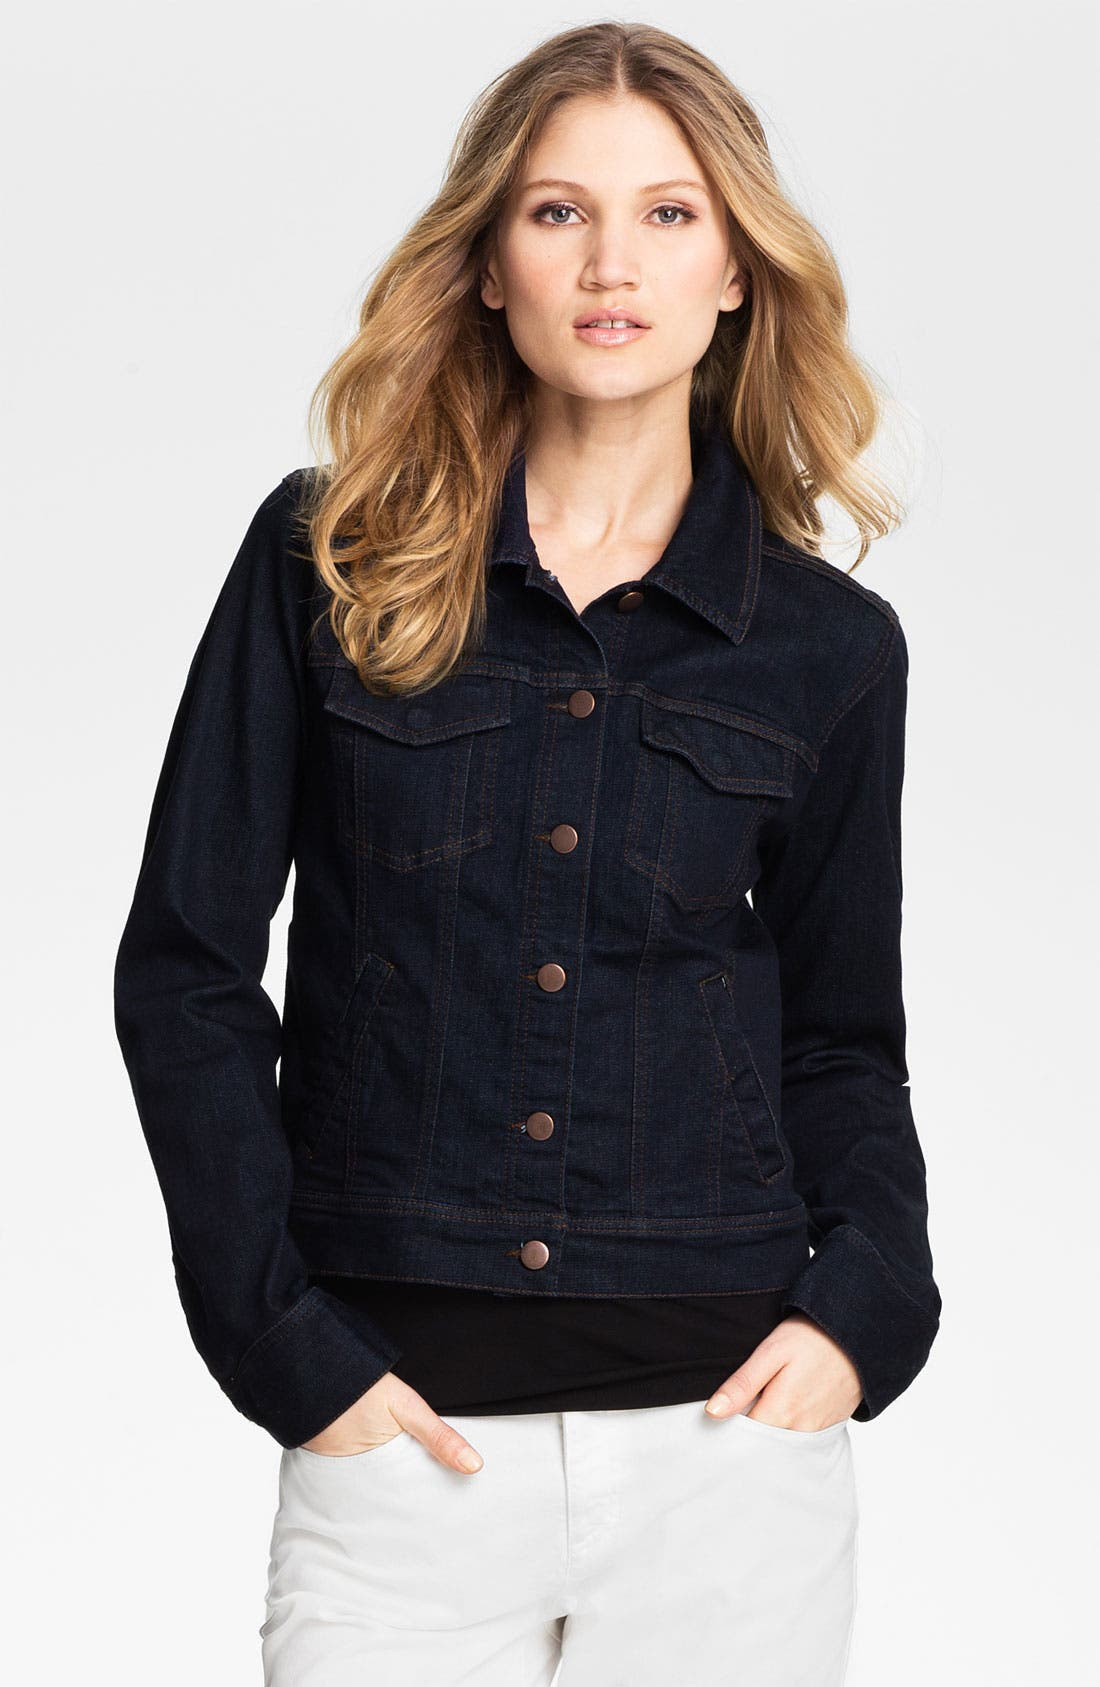 Alternate Image 1 Selected - Eileen Fisher Organic Cotton Blend Denim Jacket